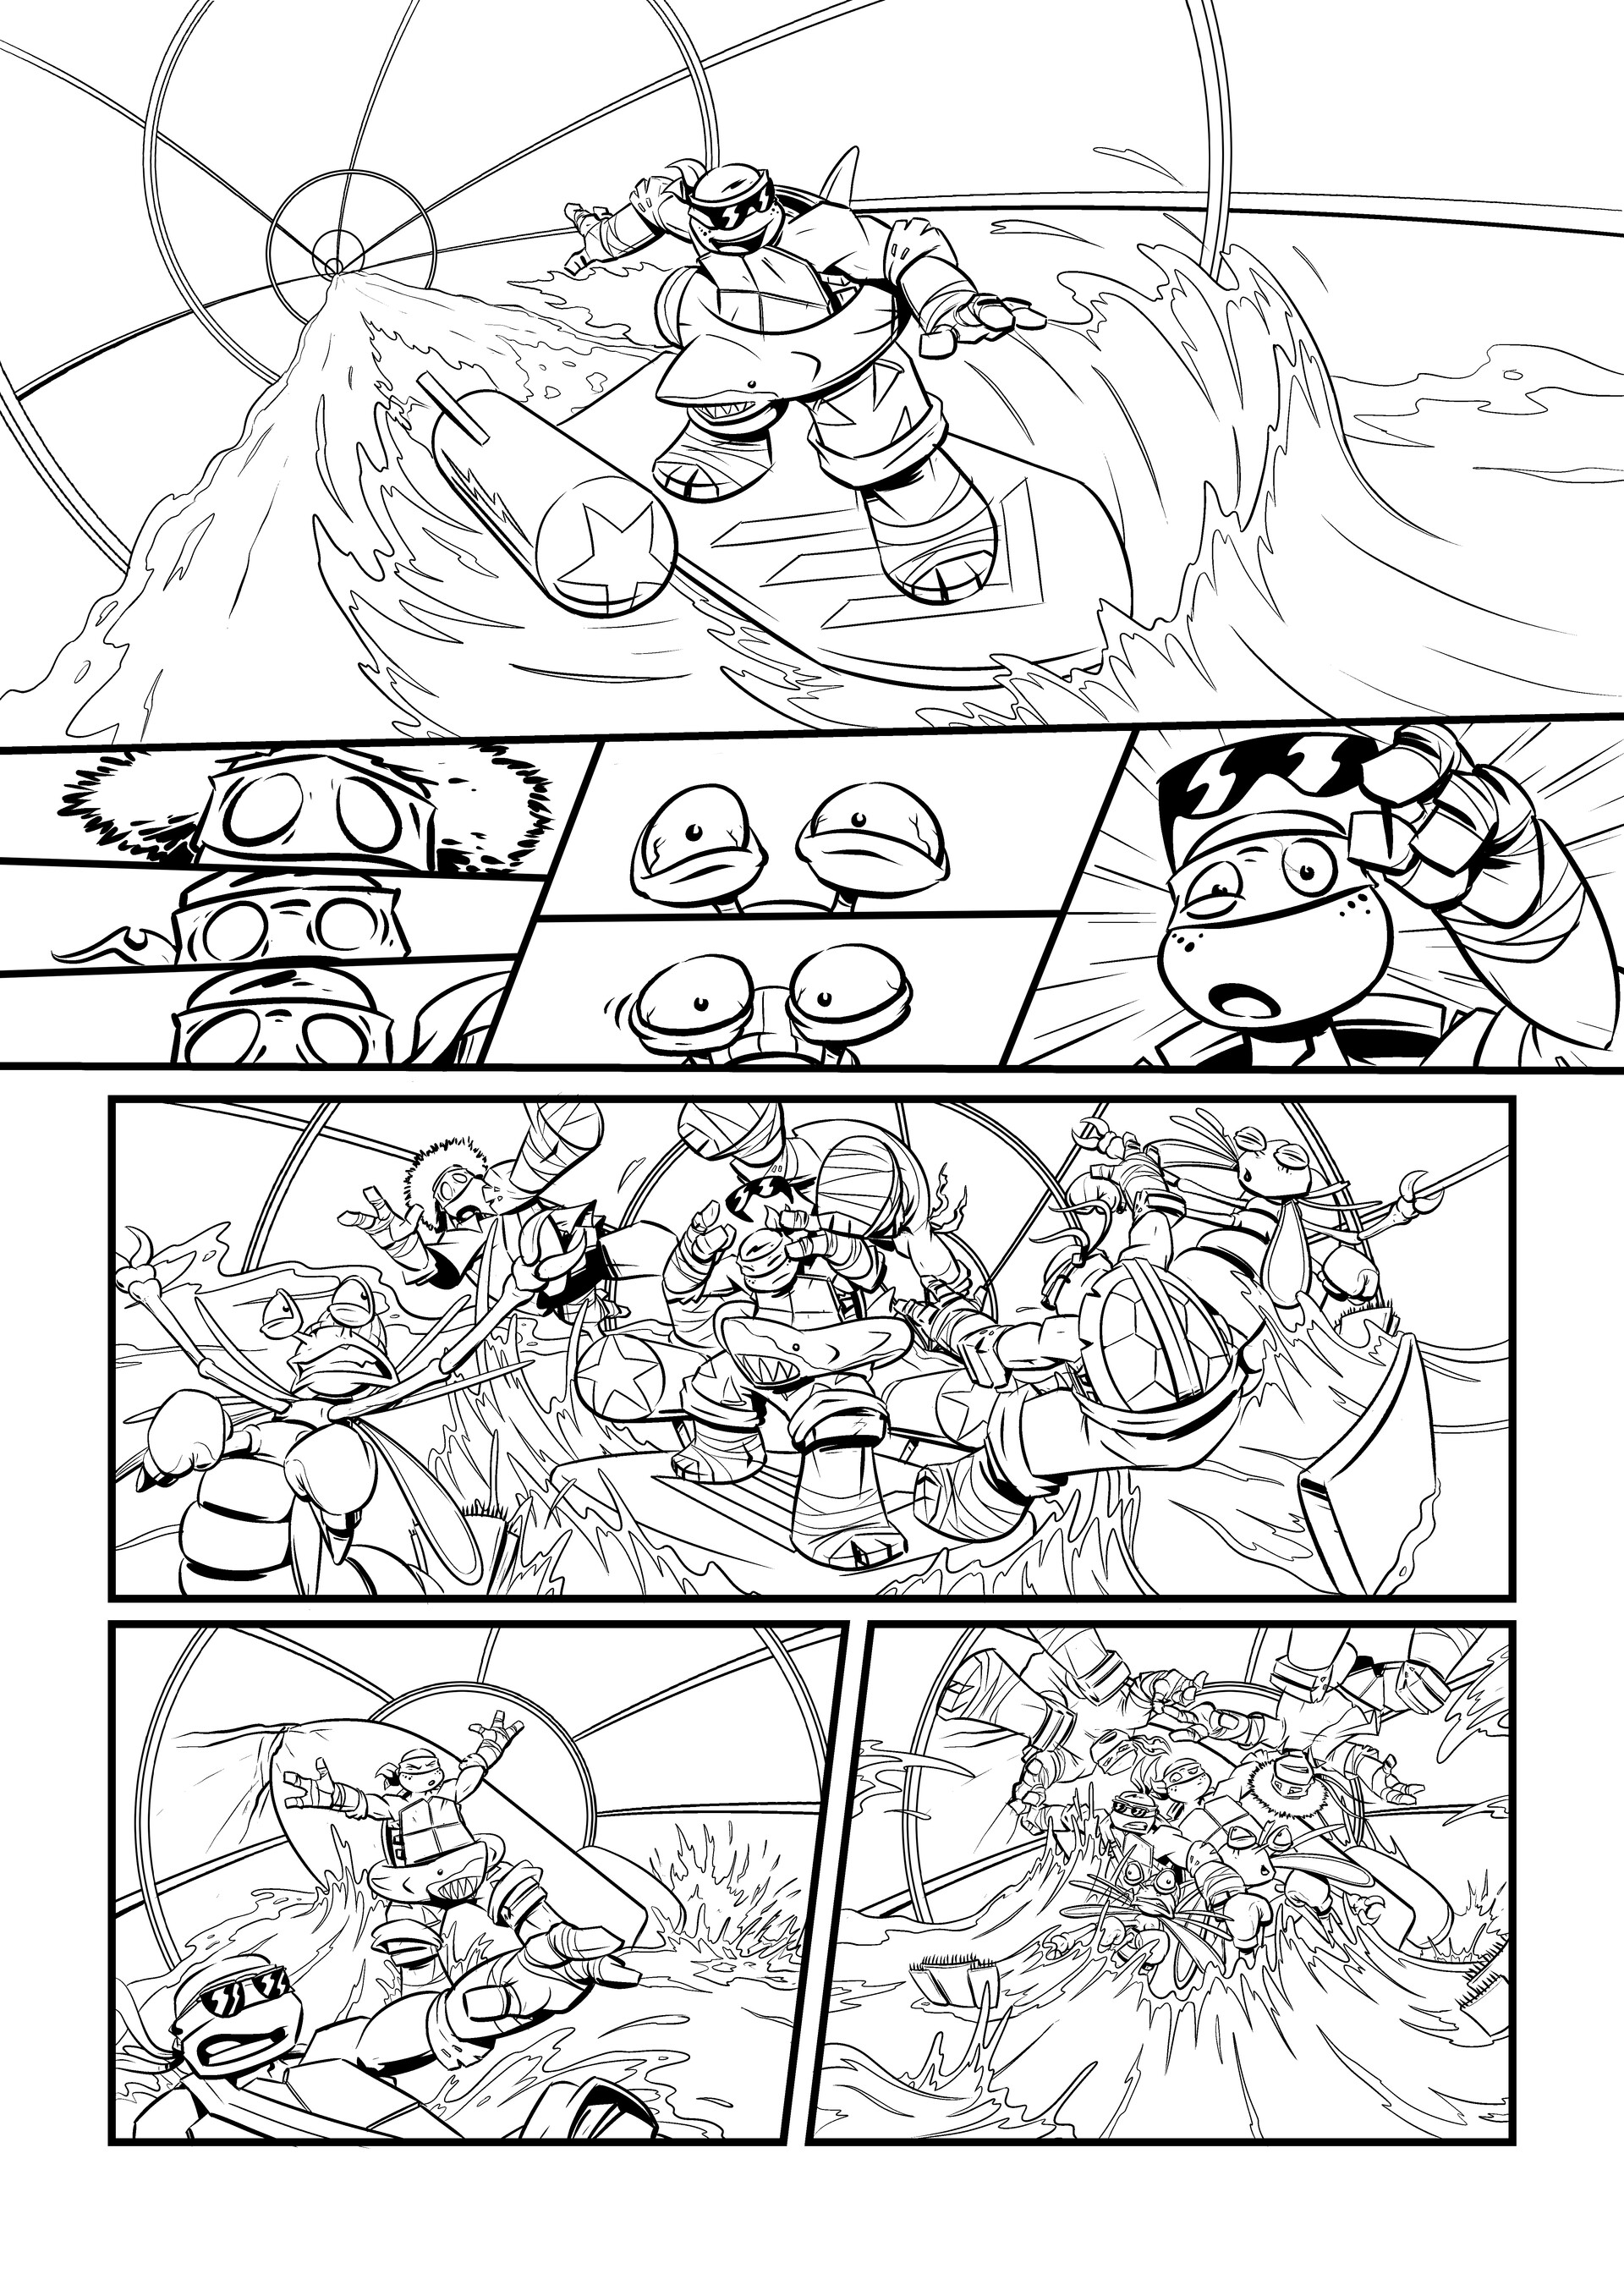 Page excerpt from Nickelodeon/Panini's Teenage Mutant Ninja Turtles comic 'The Life Aquatic'